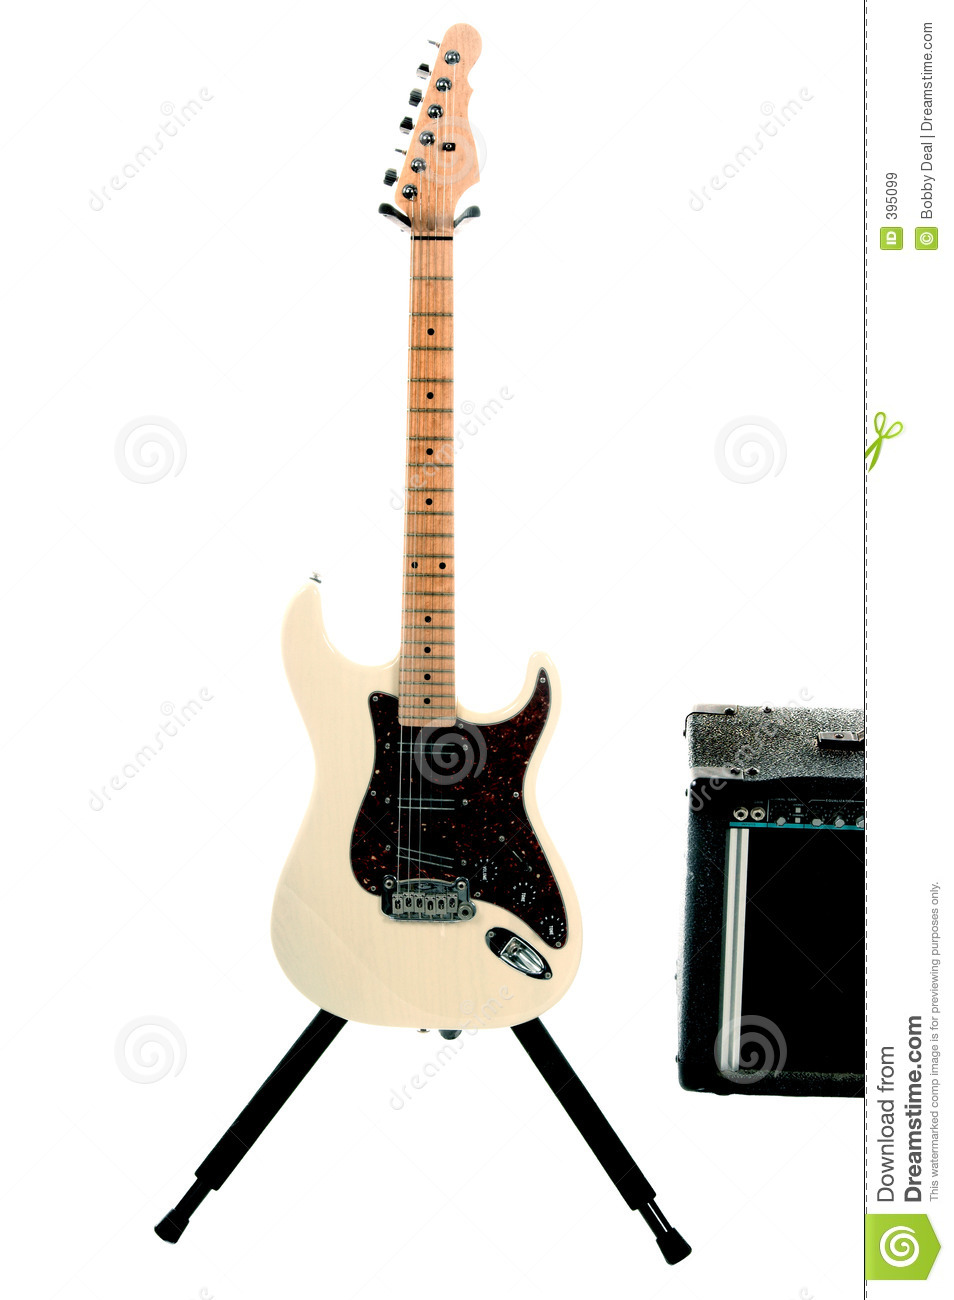 electric guitar amp royalty free stock images image 395099. Black Bedroom Furniture Sets. Home Design Ideas